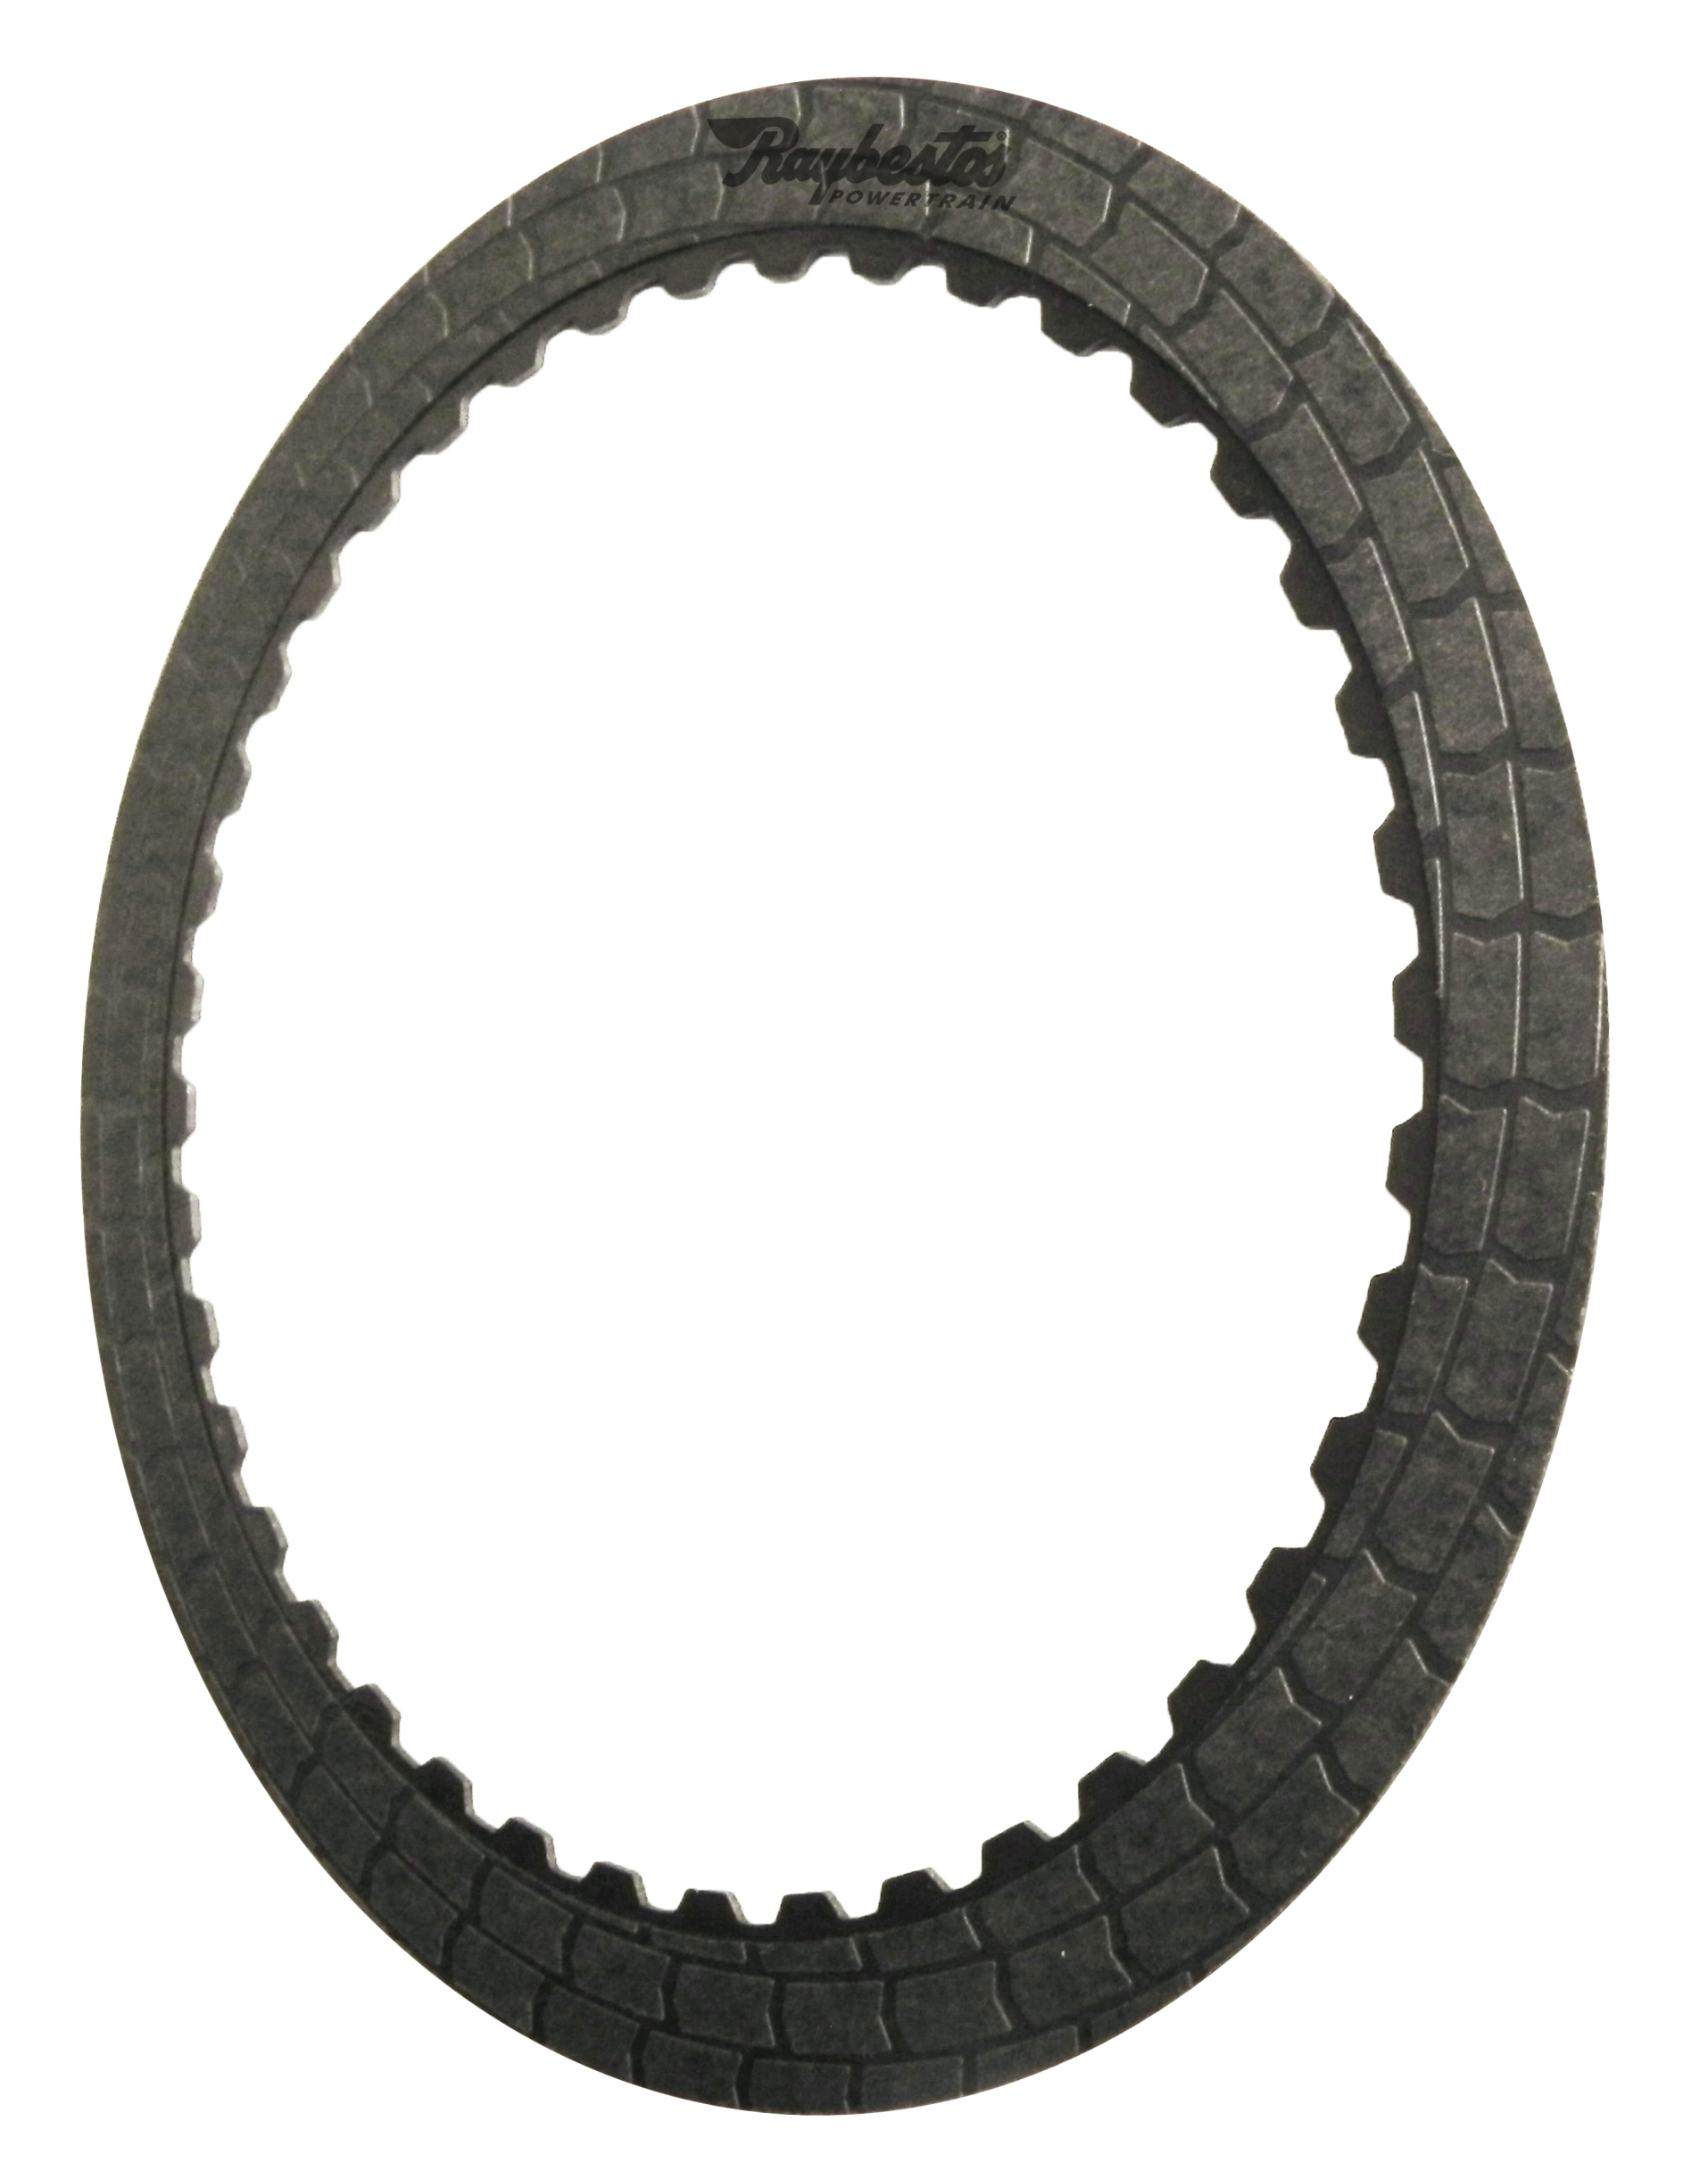 RH576635 | 2003-ON Friction Clutch Plate (HT) Hybrid Technology #2 Clutch Proprietary High Energy (HT)